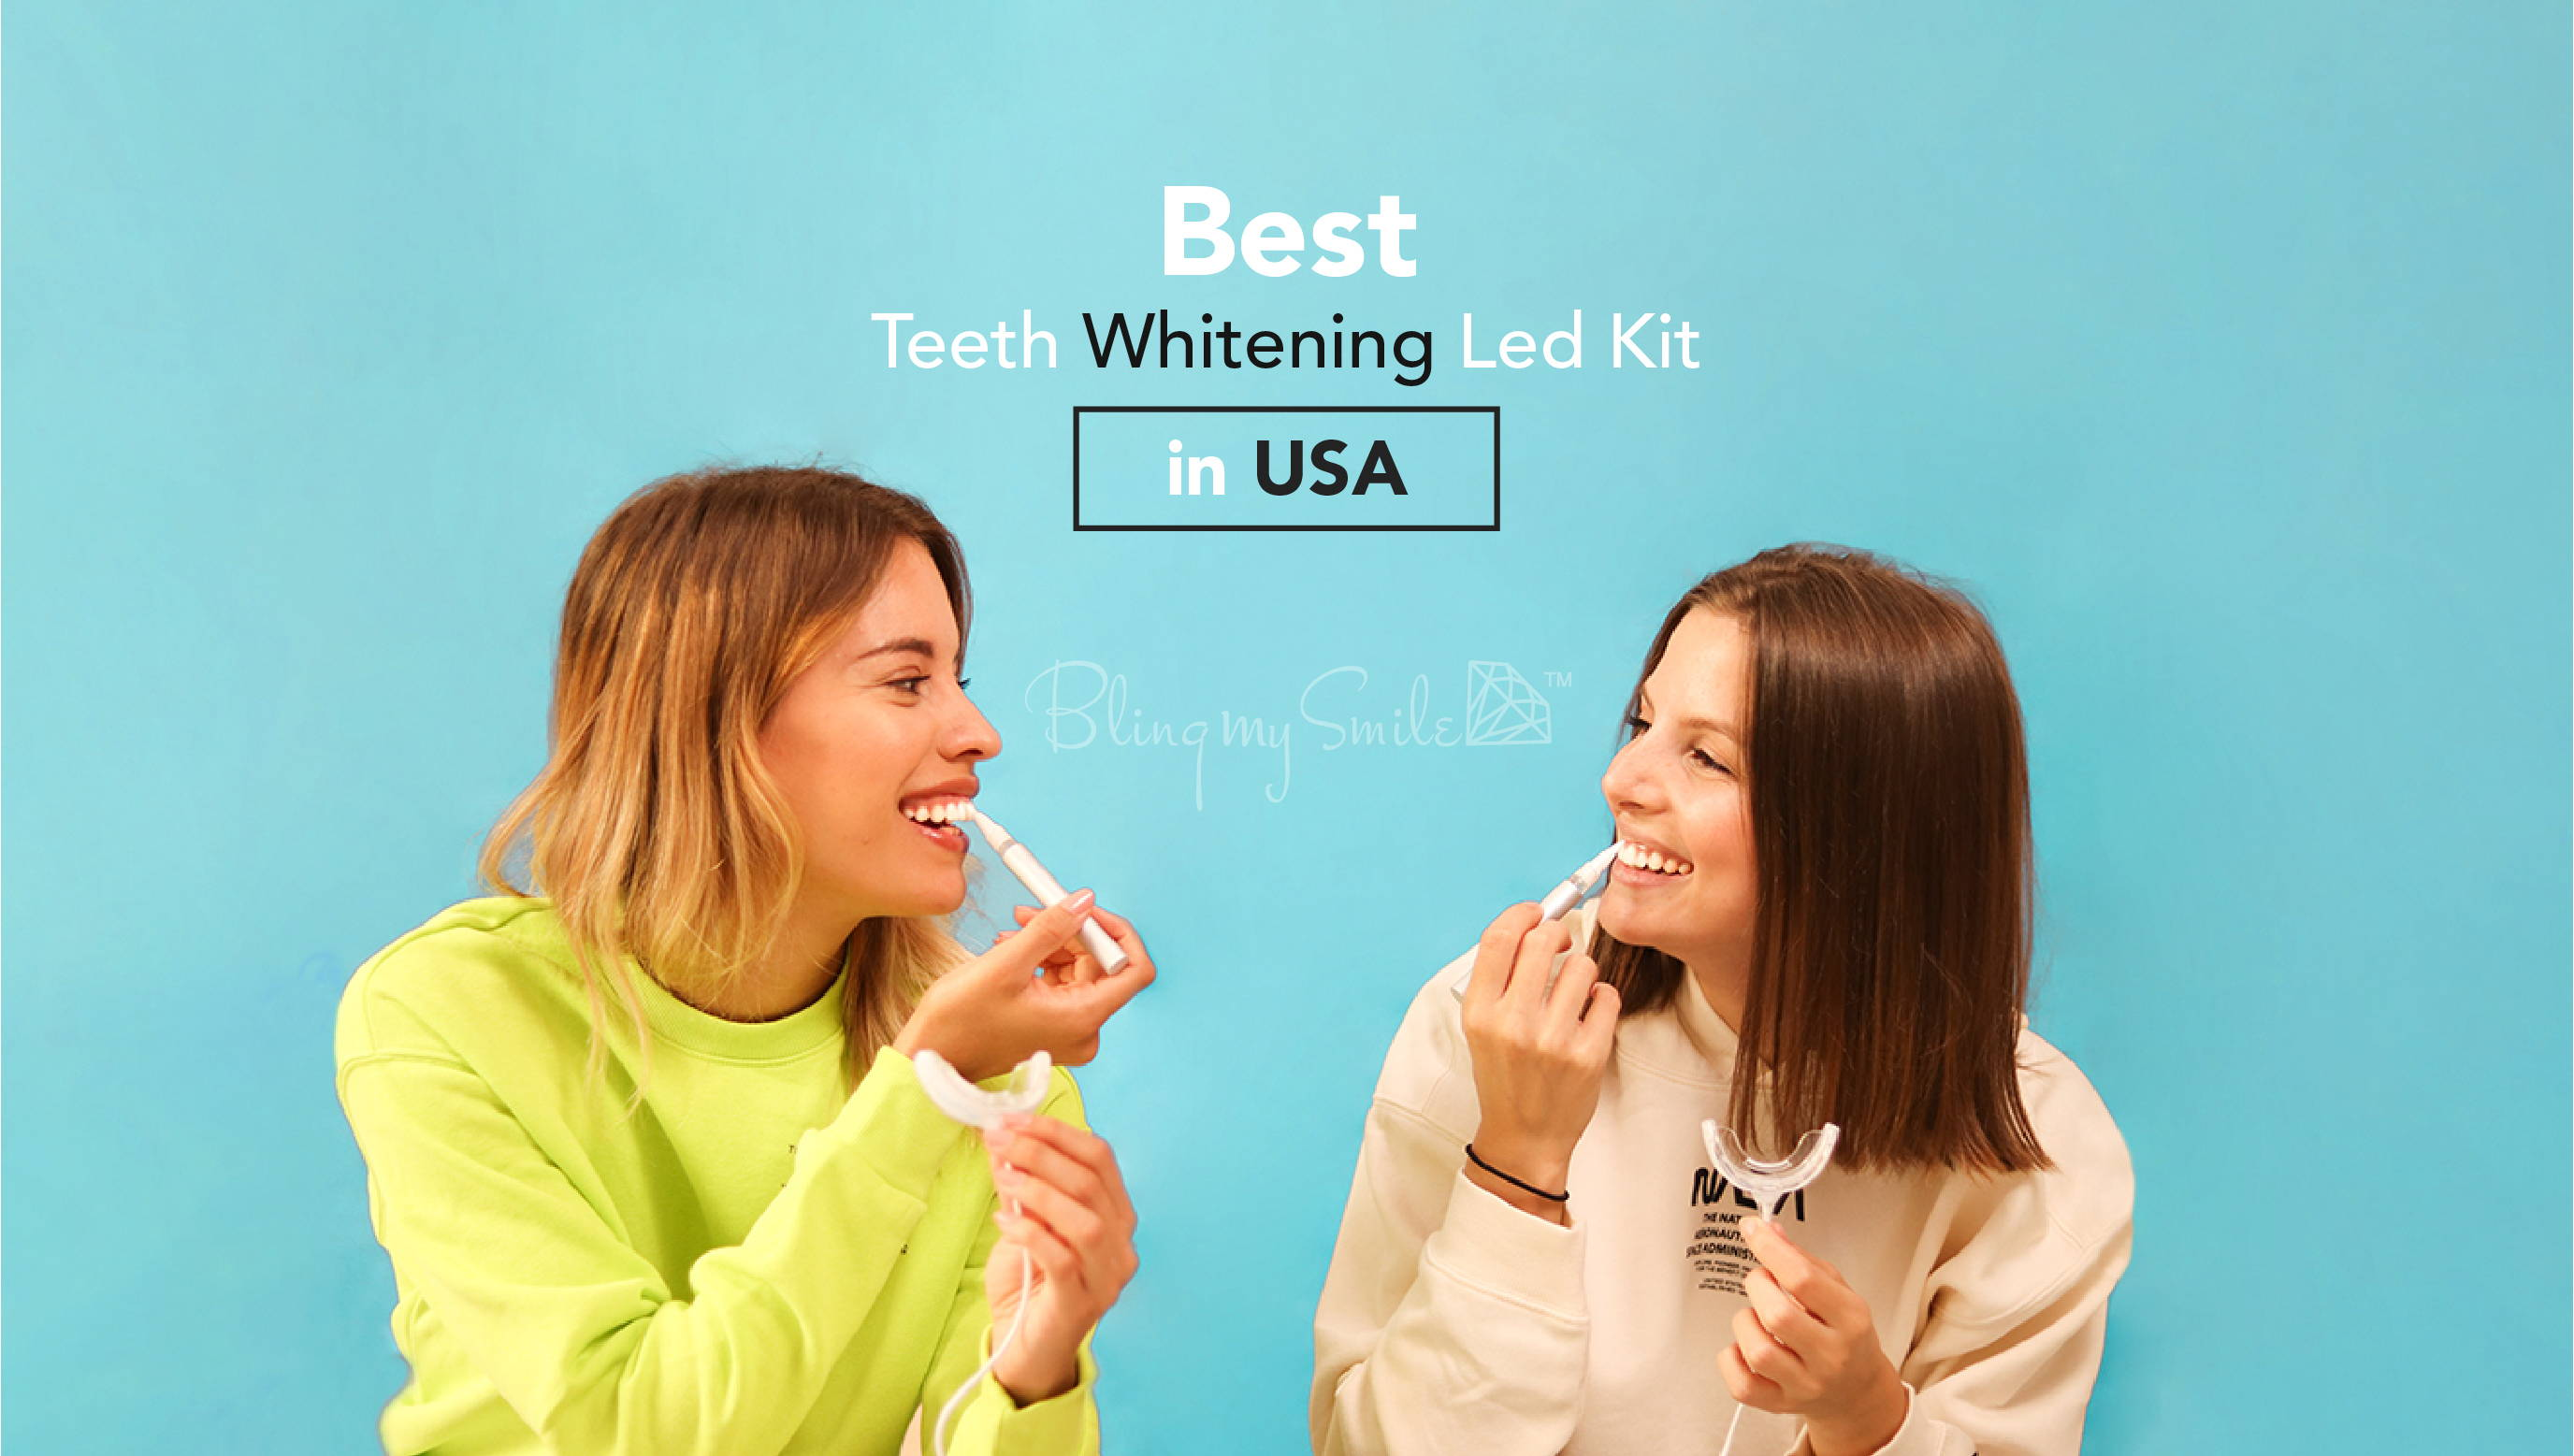 Bling my Smile teet whitening led kit teeth whitening in just 10 minutes without sensitivity